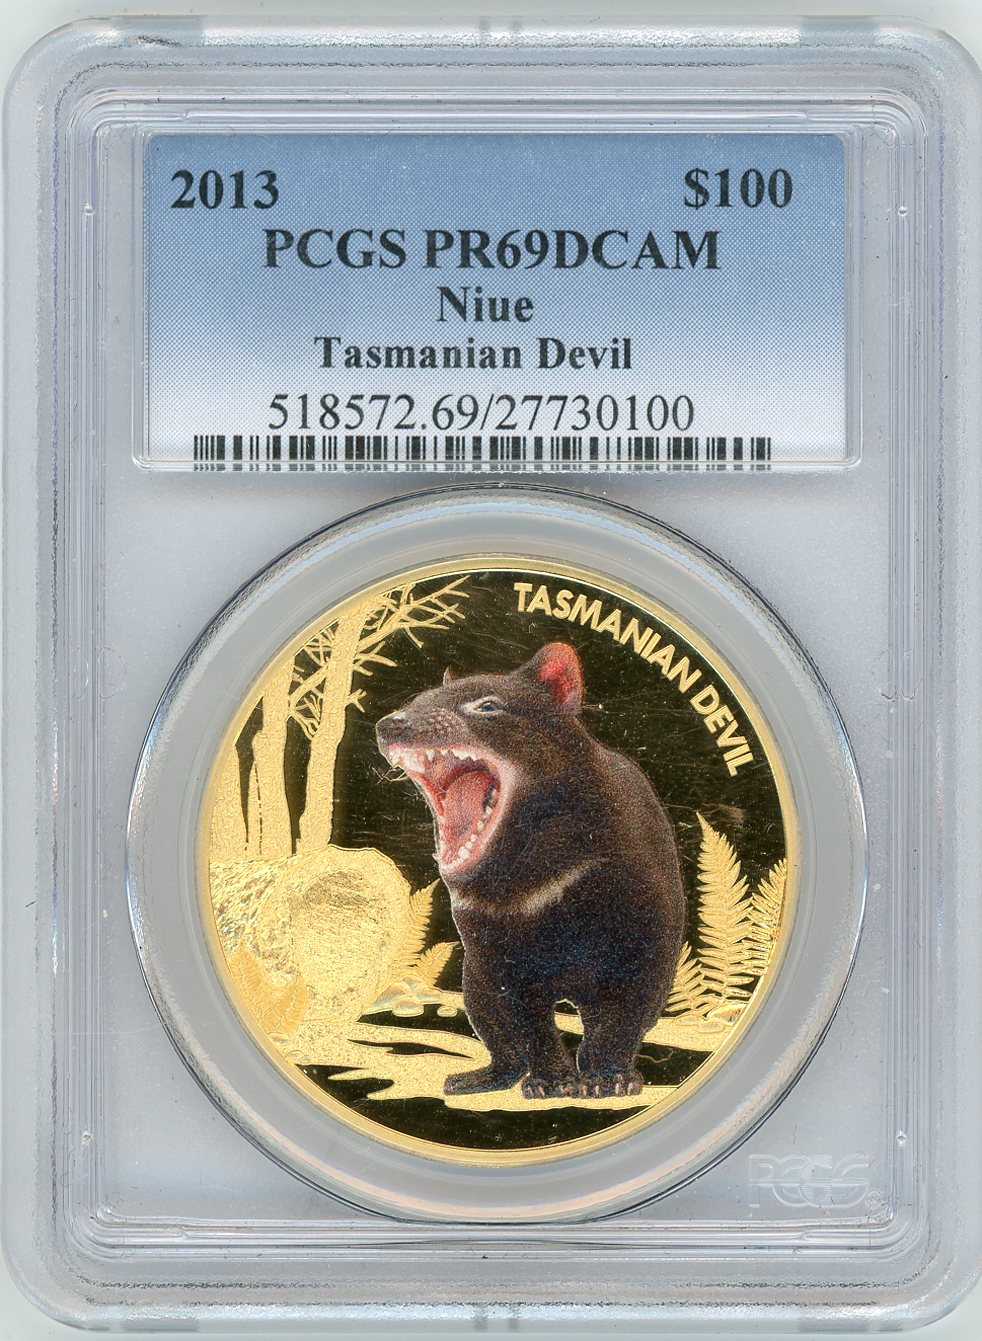 Thumbnail for 2013 Niue 1oz Coloured Proof Tasmanian Devil PCGS Slabbed PR69 DCAM